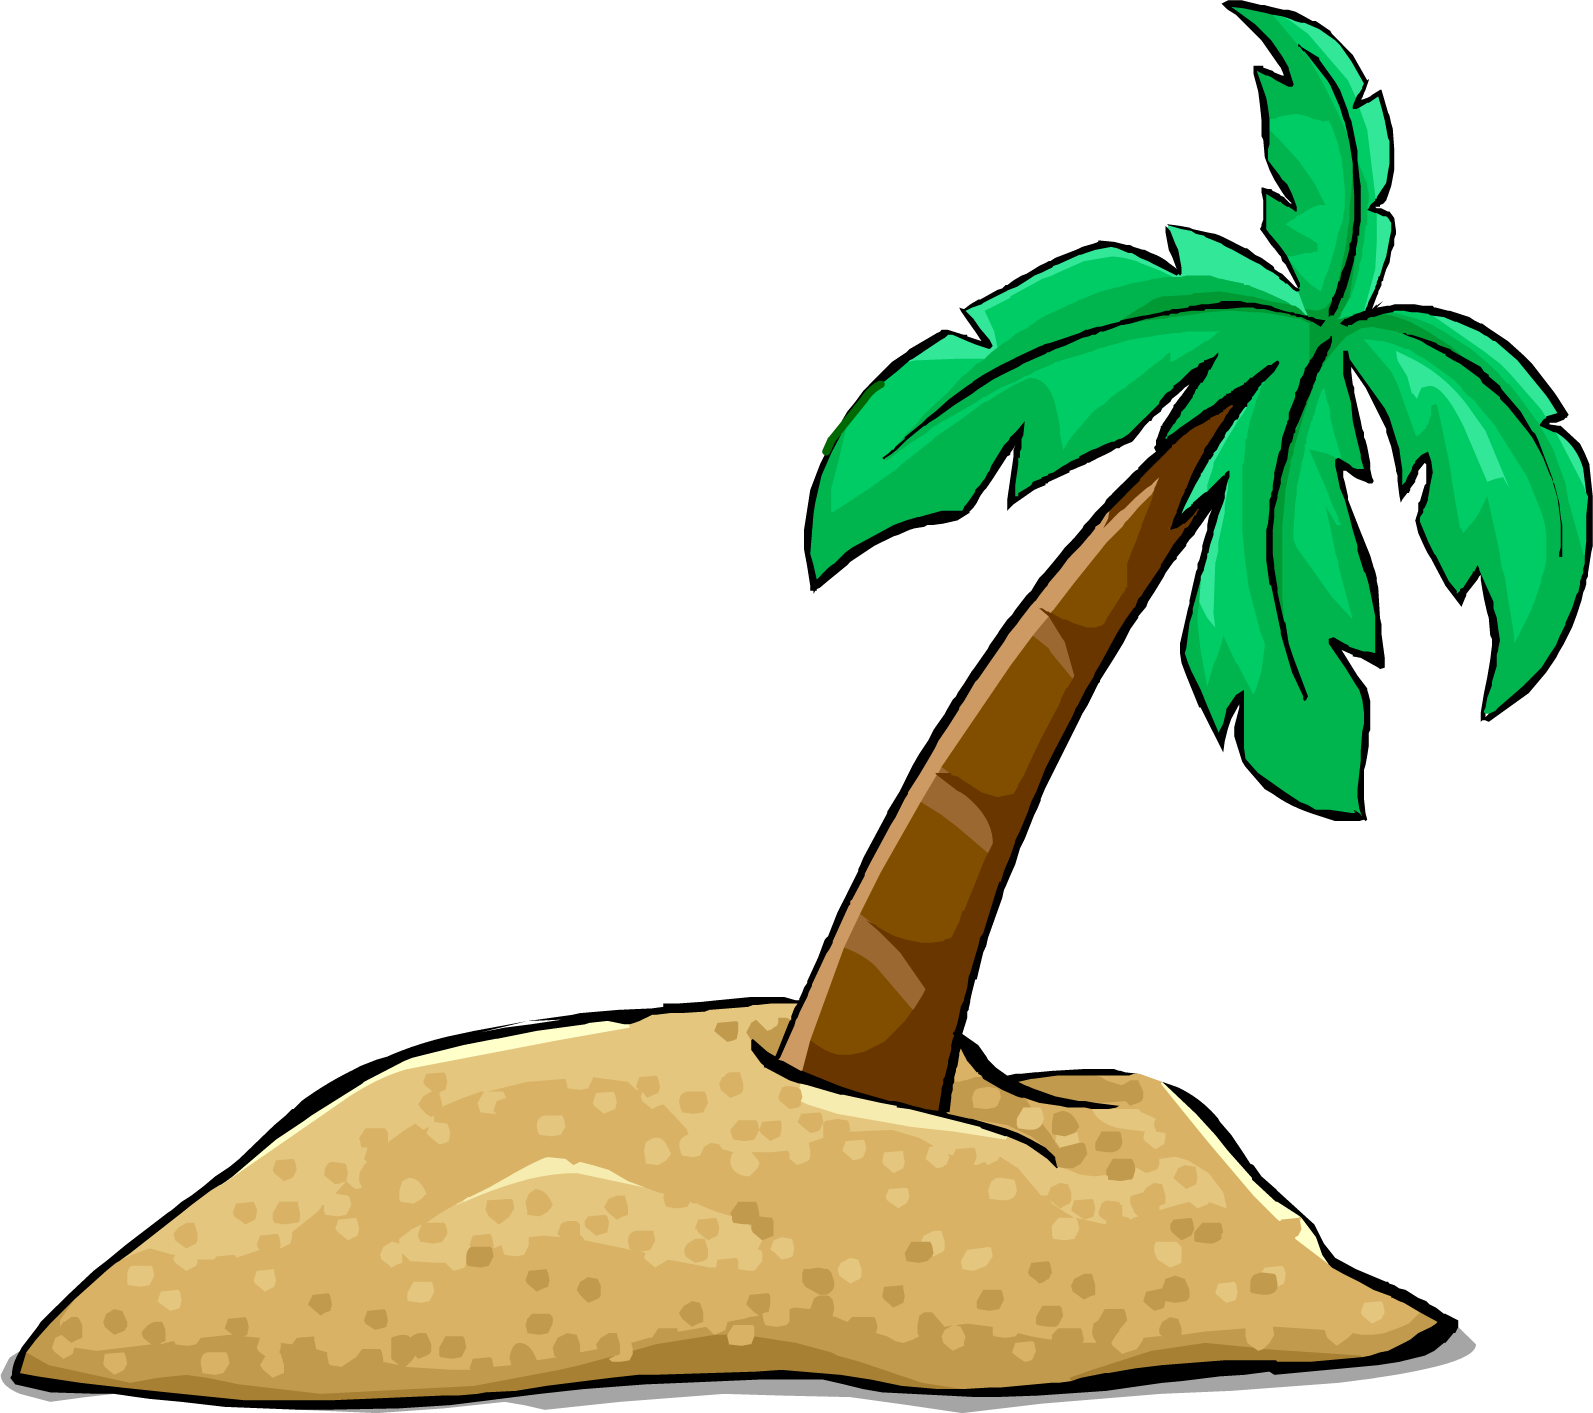 Island Clipart Images | Free download on ClipArtMag